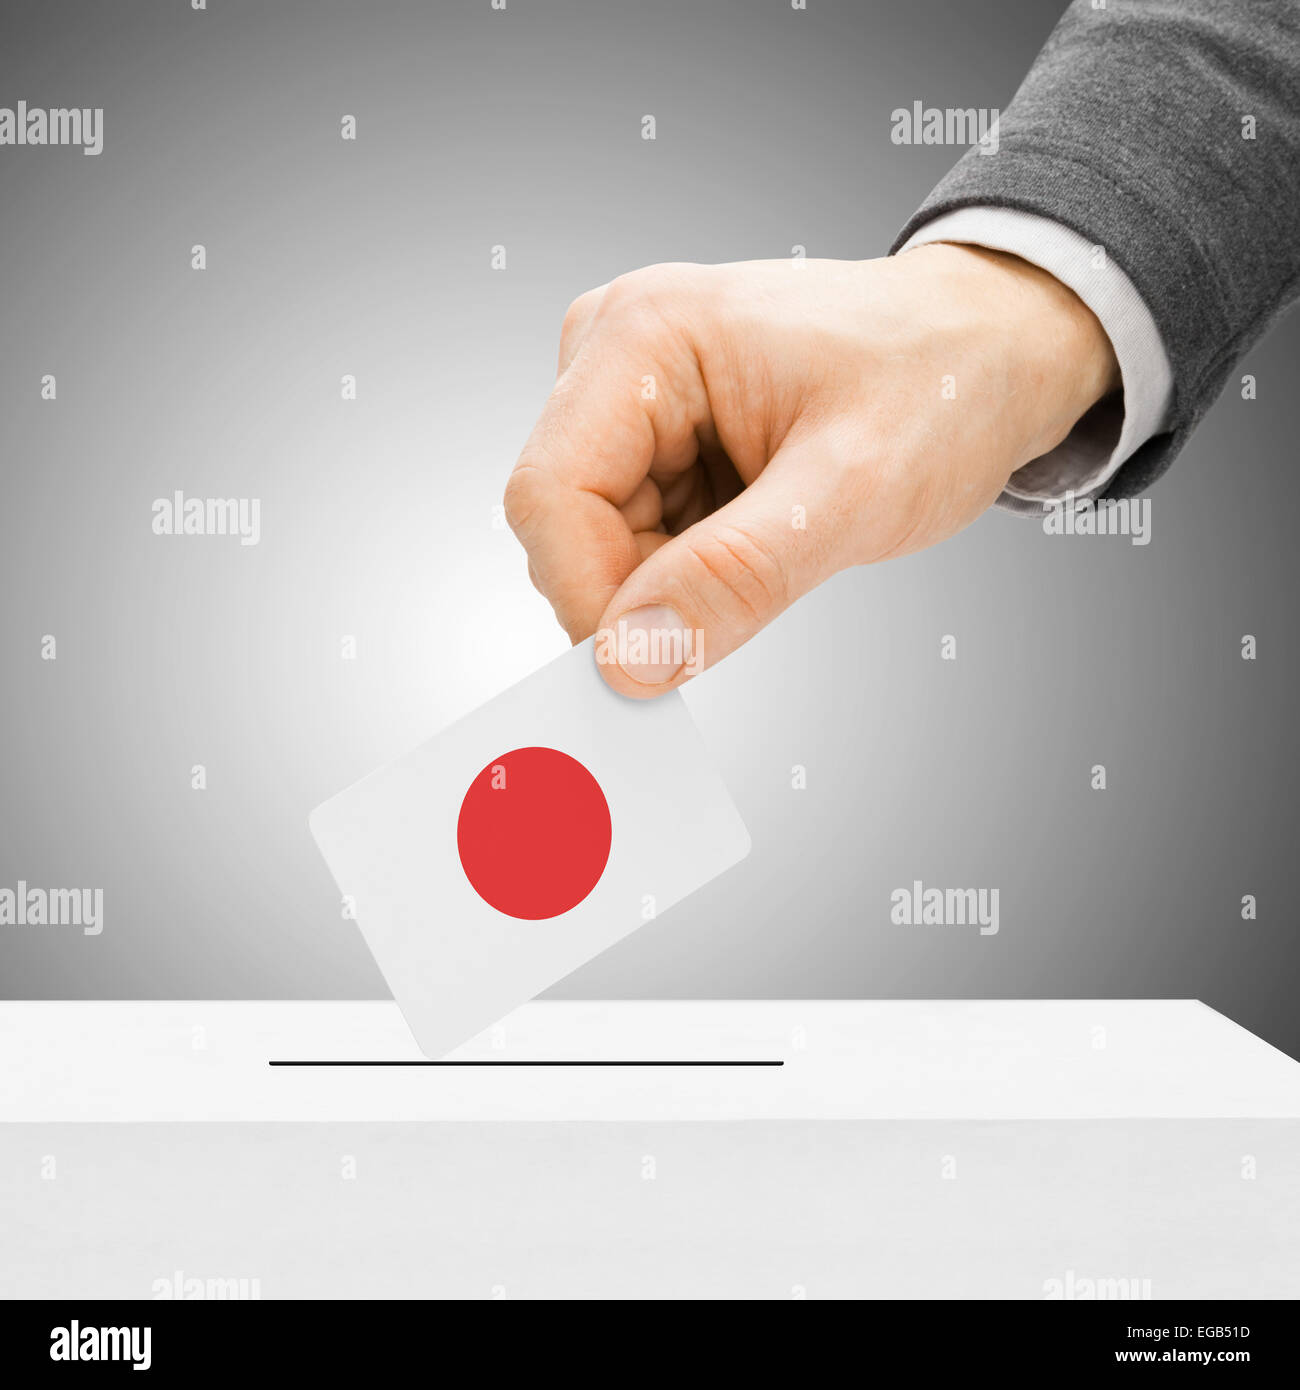 Voting concept - Male inserting flag into ballot box - Japan Stock Photo